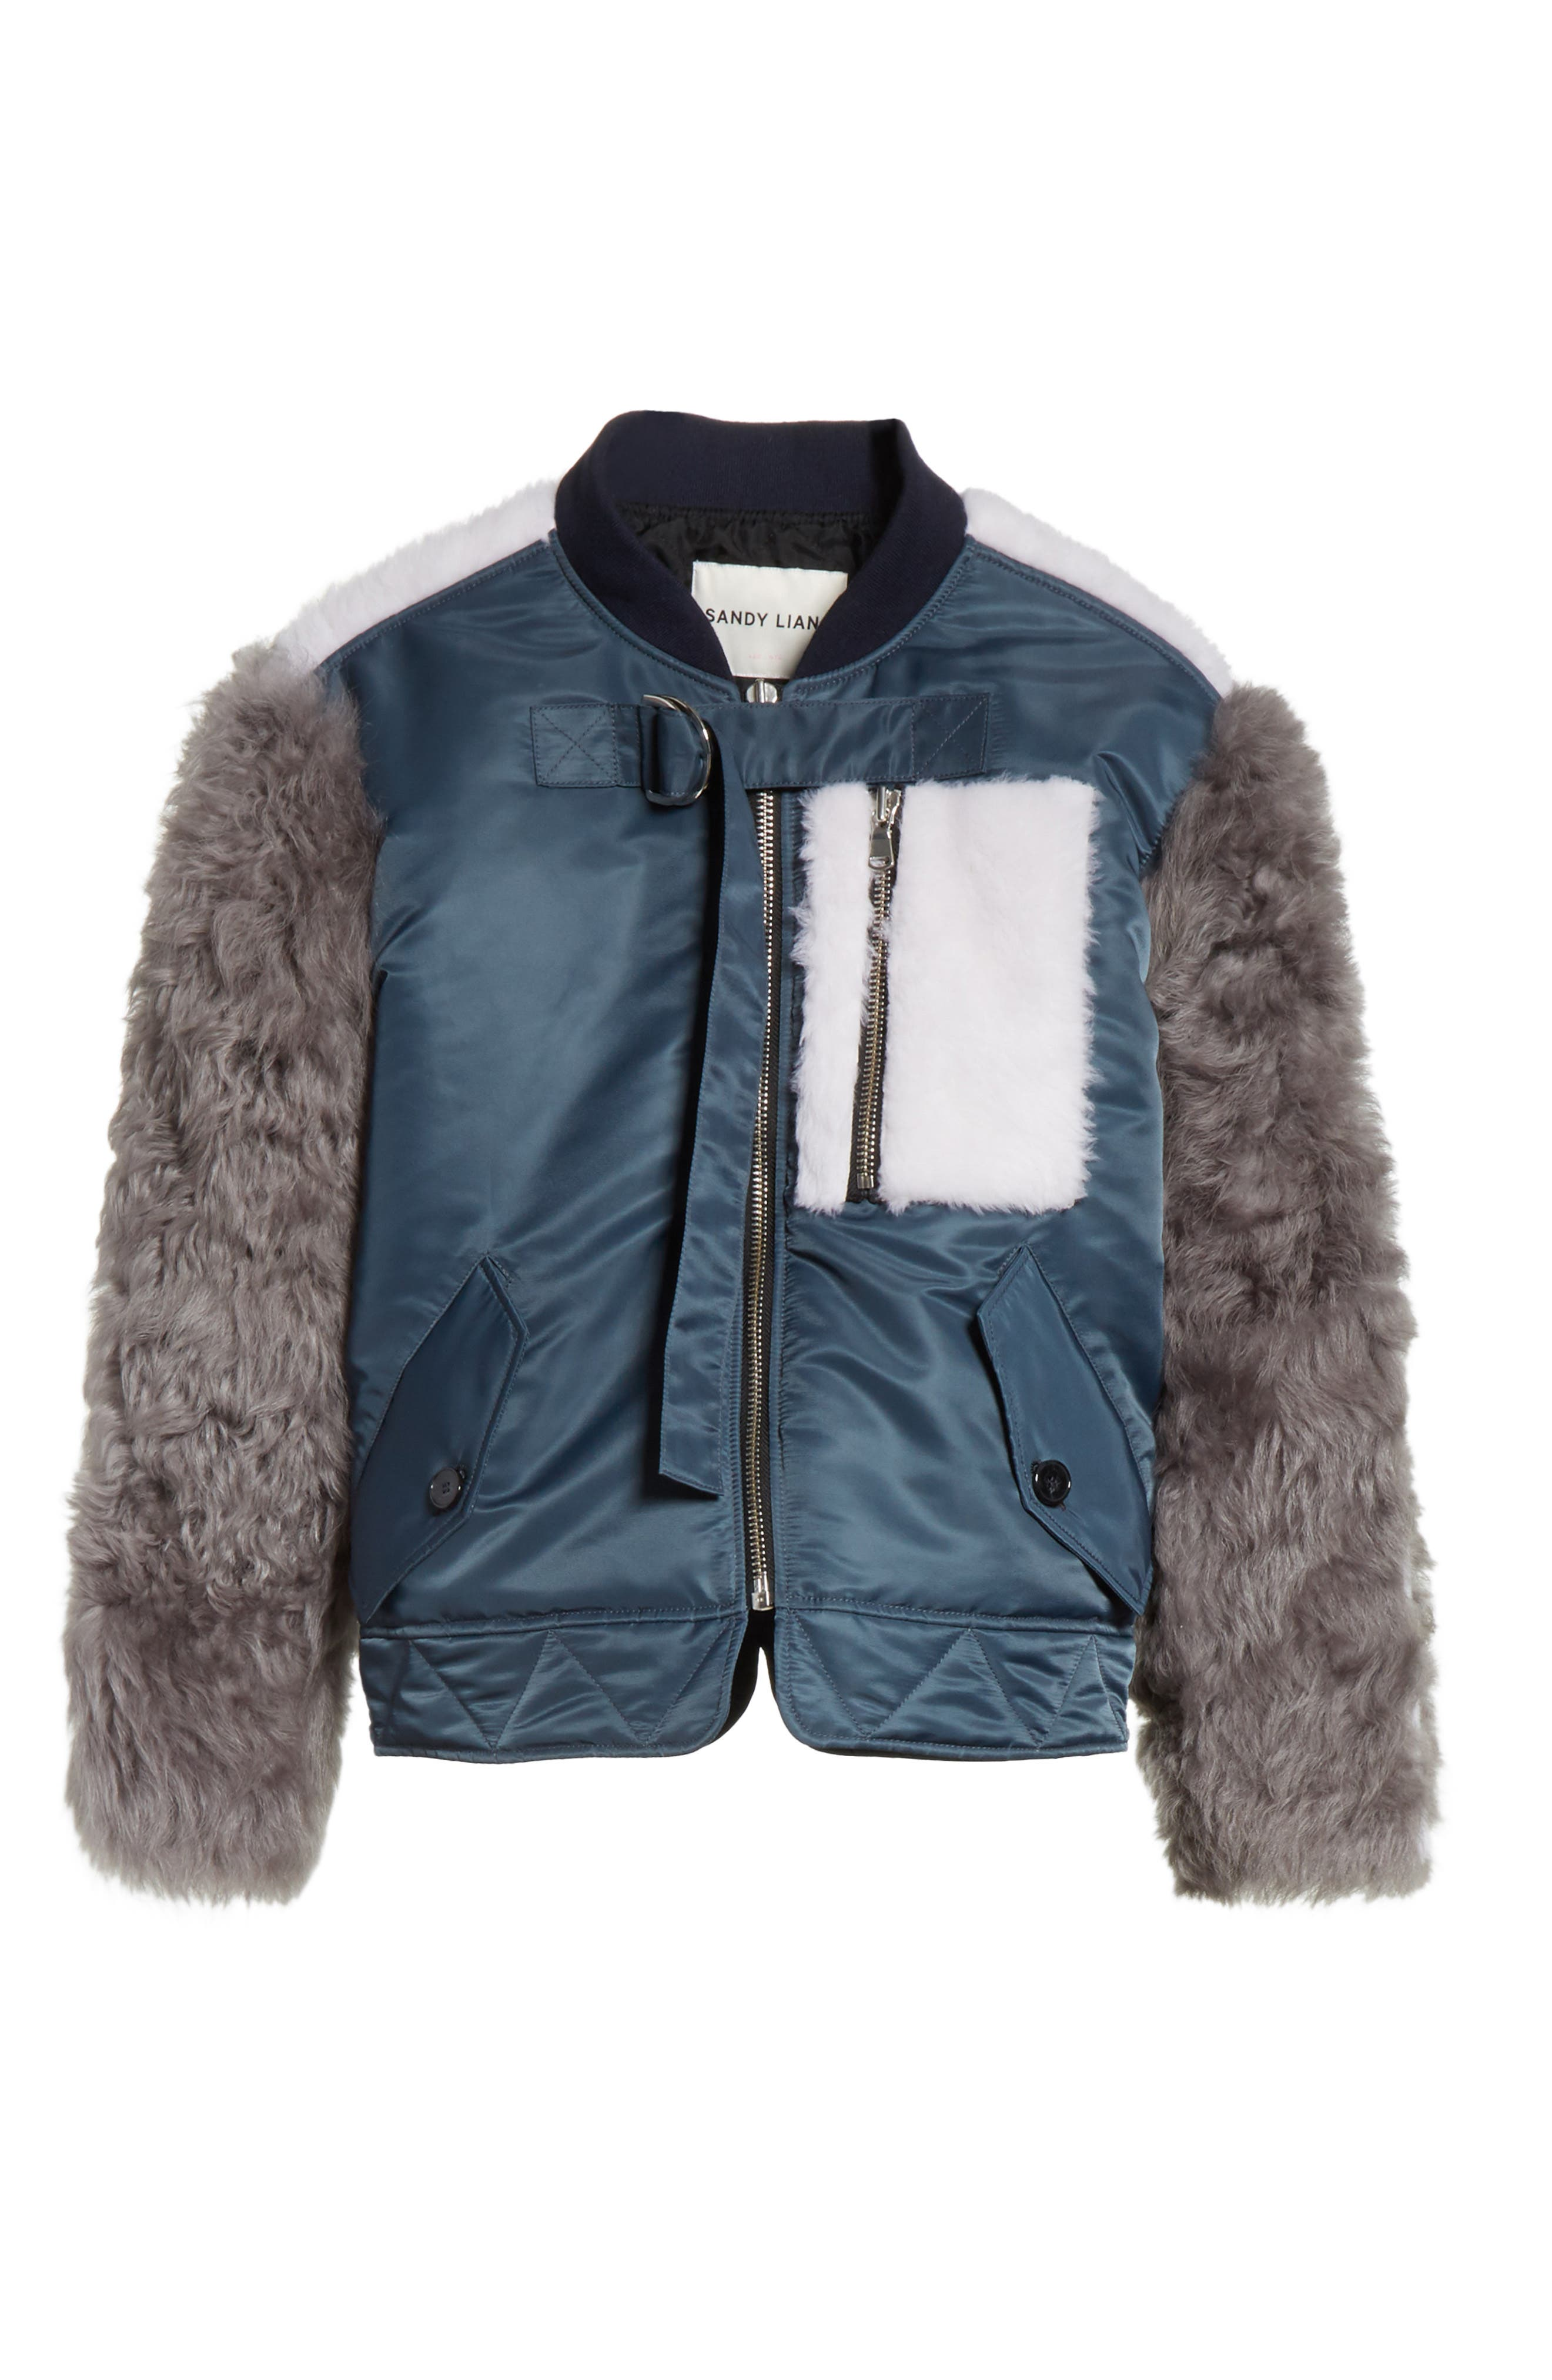 Peter Genuine Shearling Sleeve Jacket,                             Alternate thumbnail 6, color,                             Navy